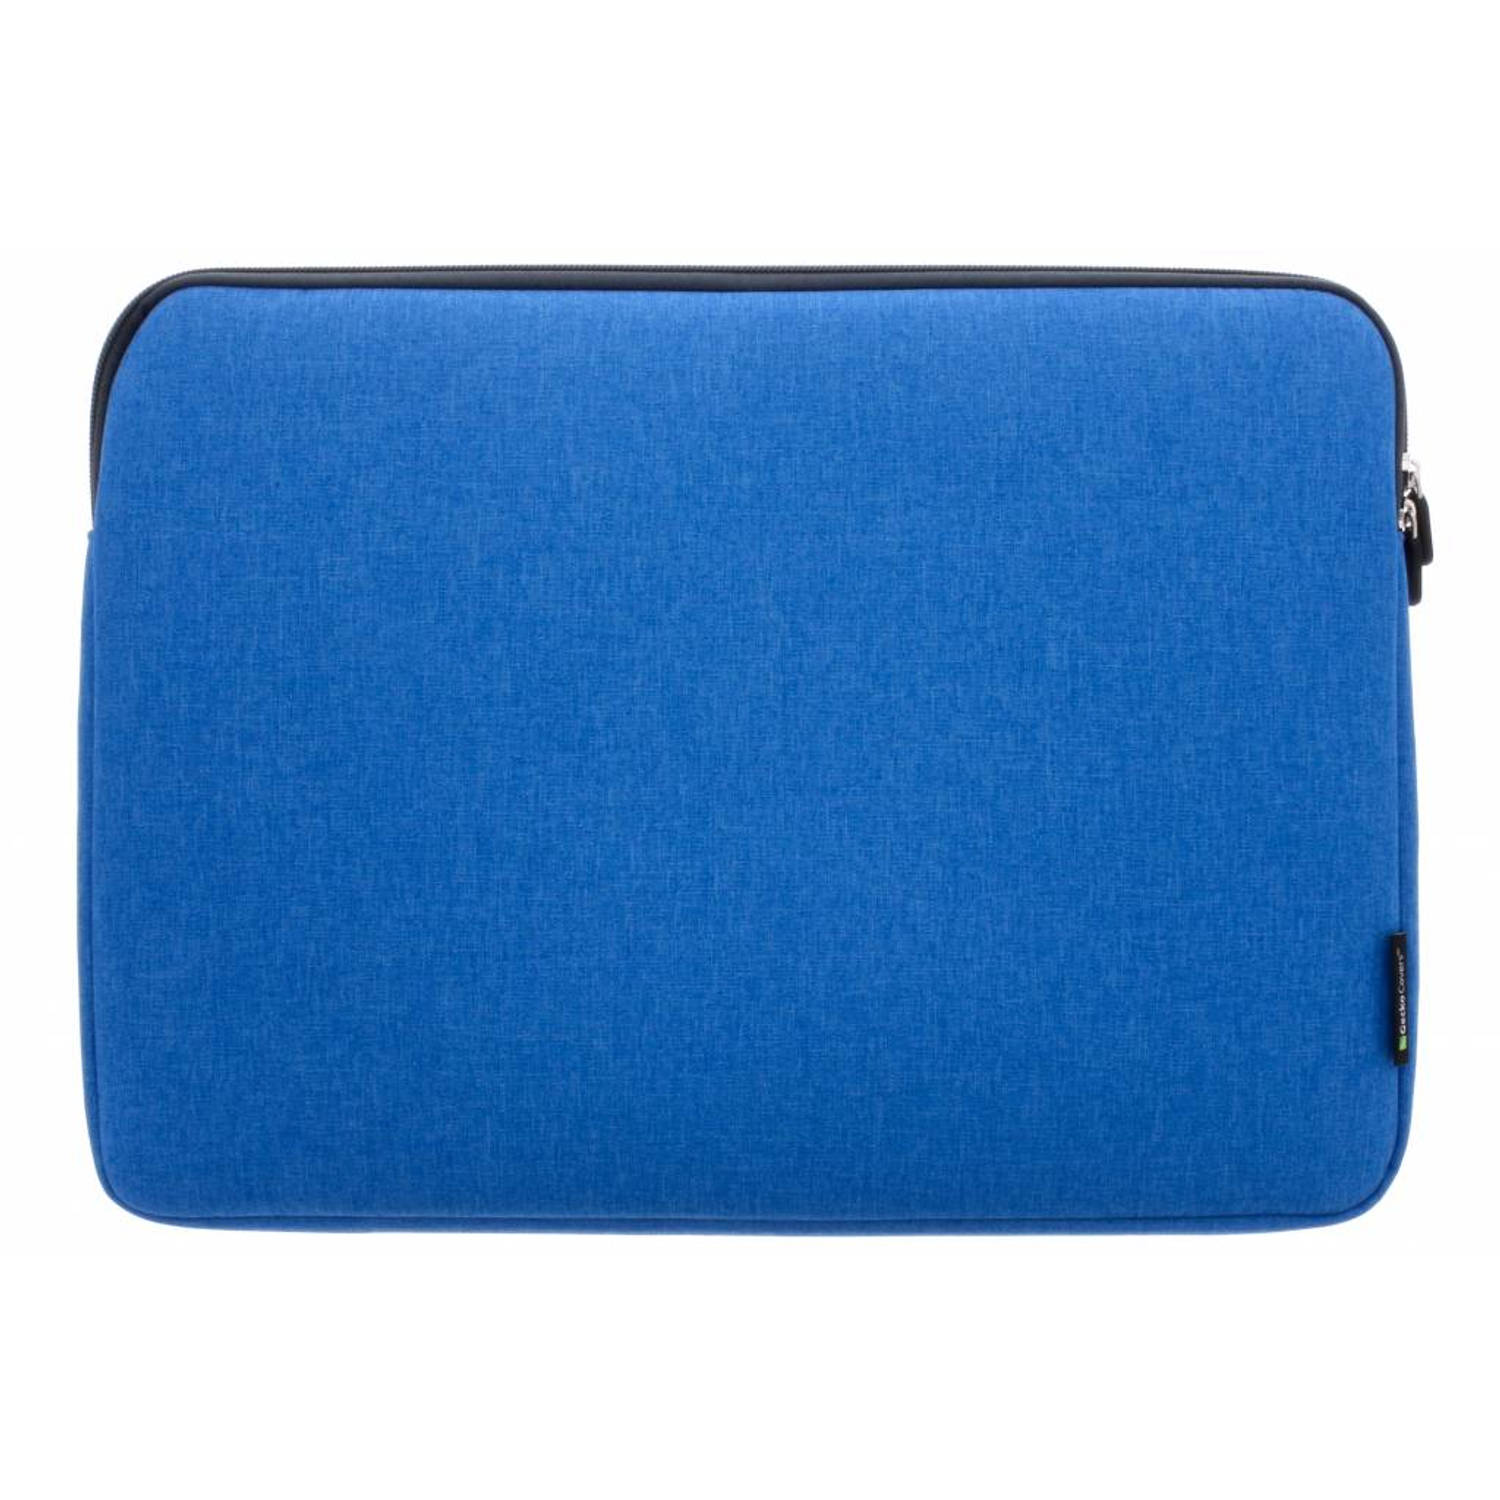 Gecko Covers Blauwe Universal Zipper Laptop Sleeve 15-16 inch